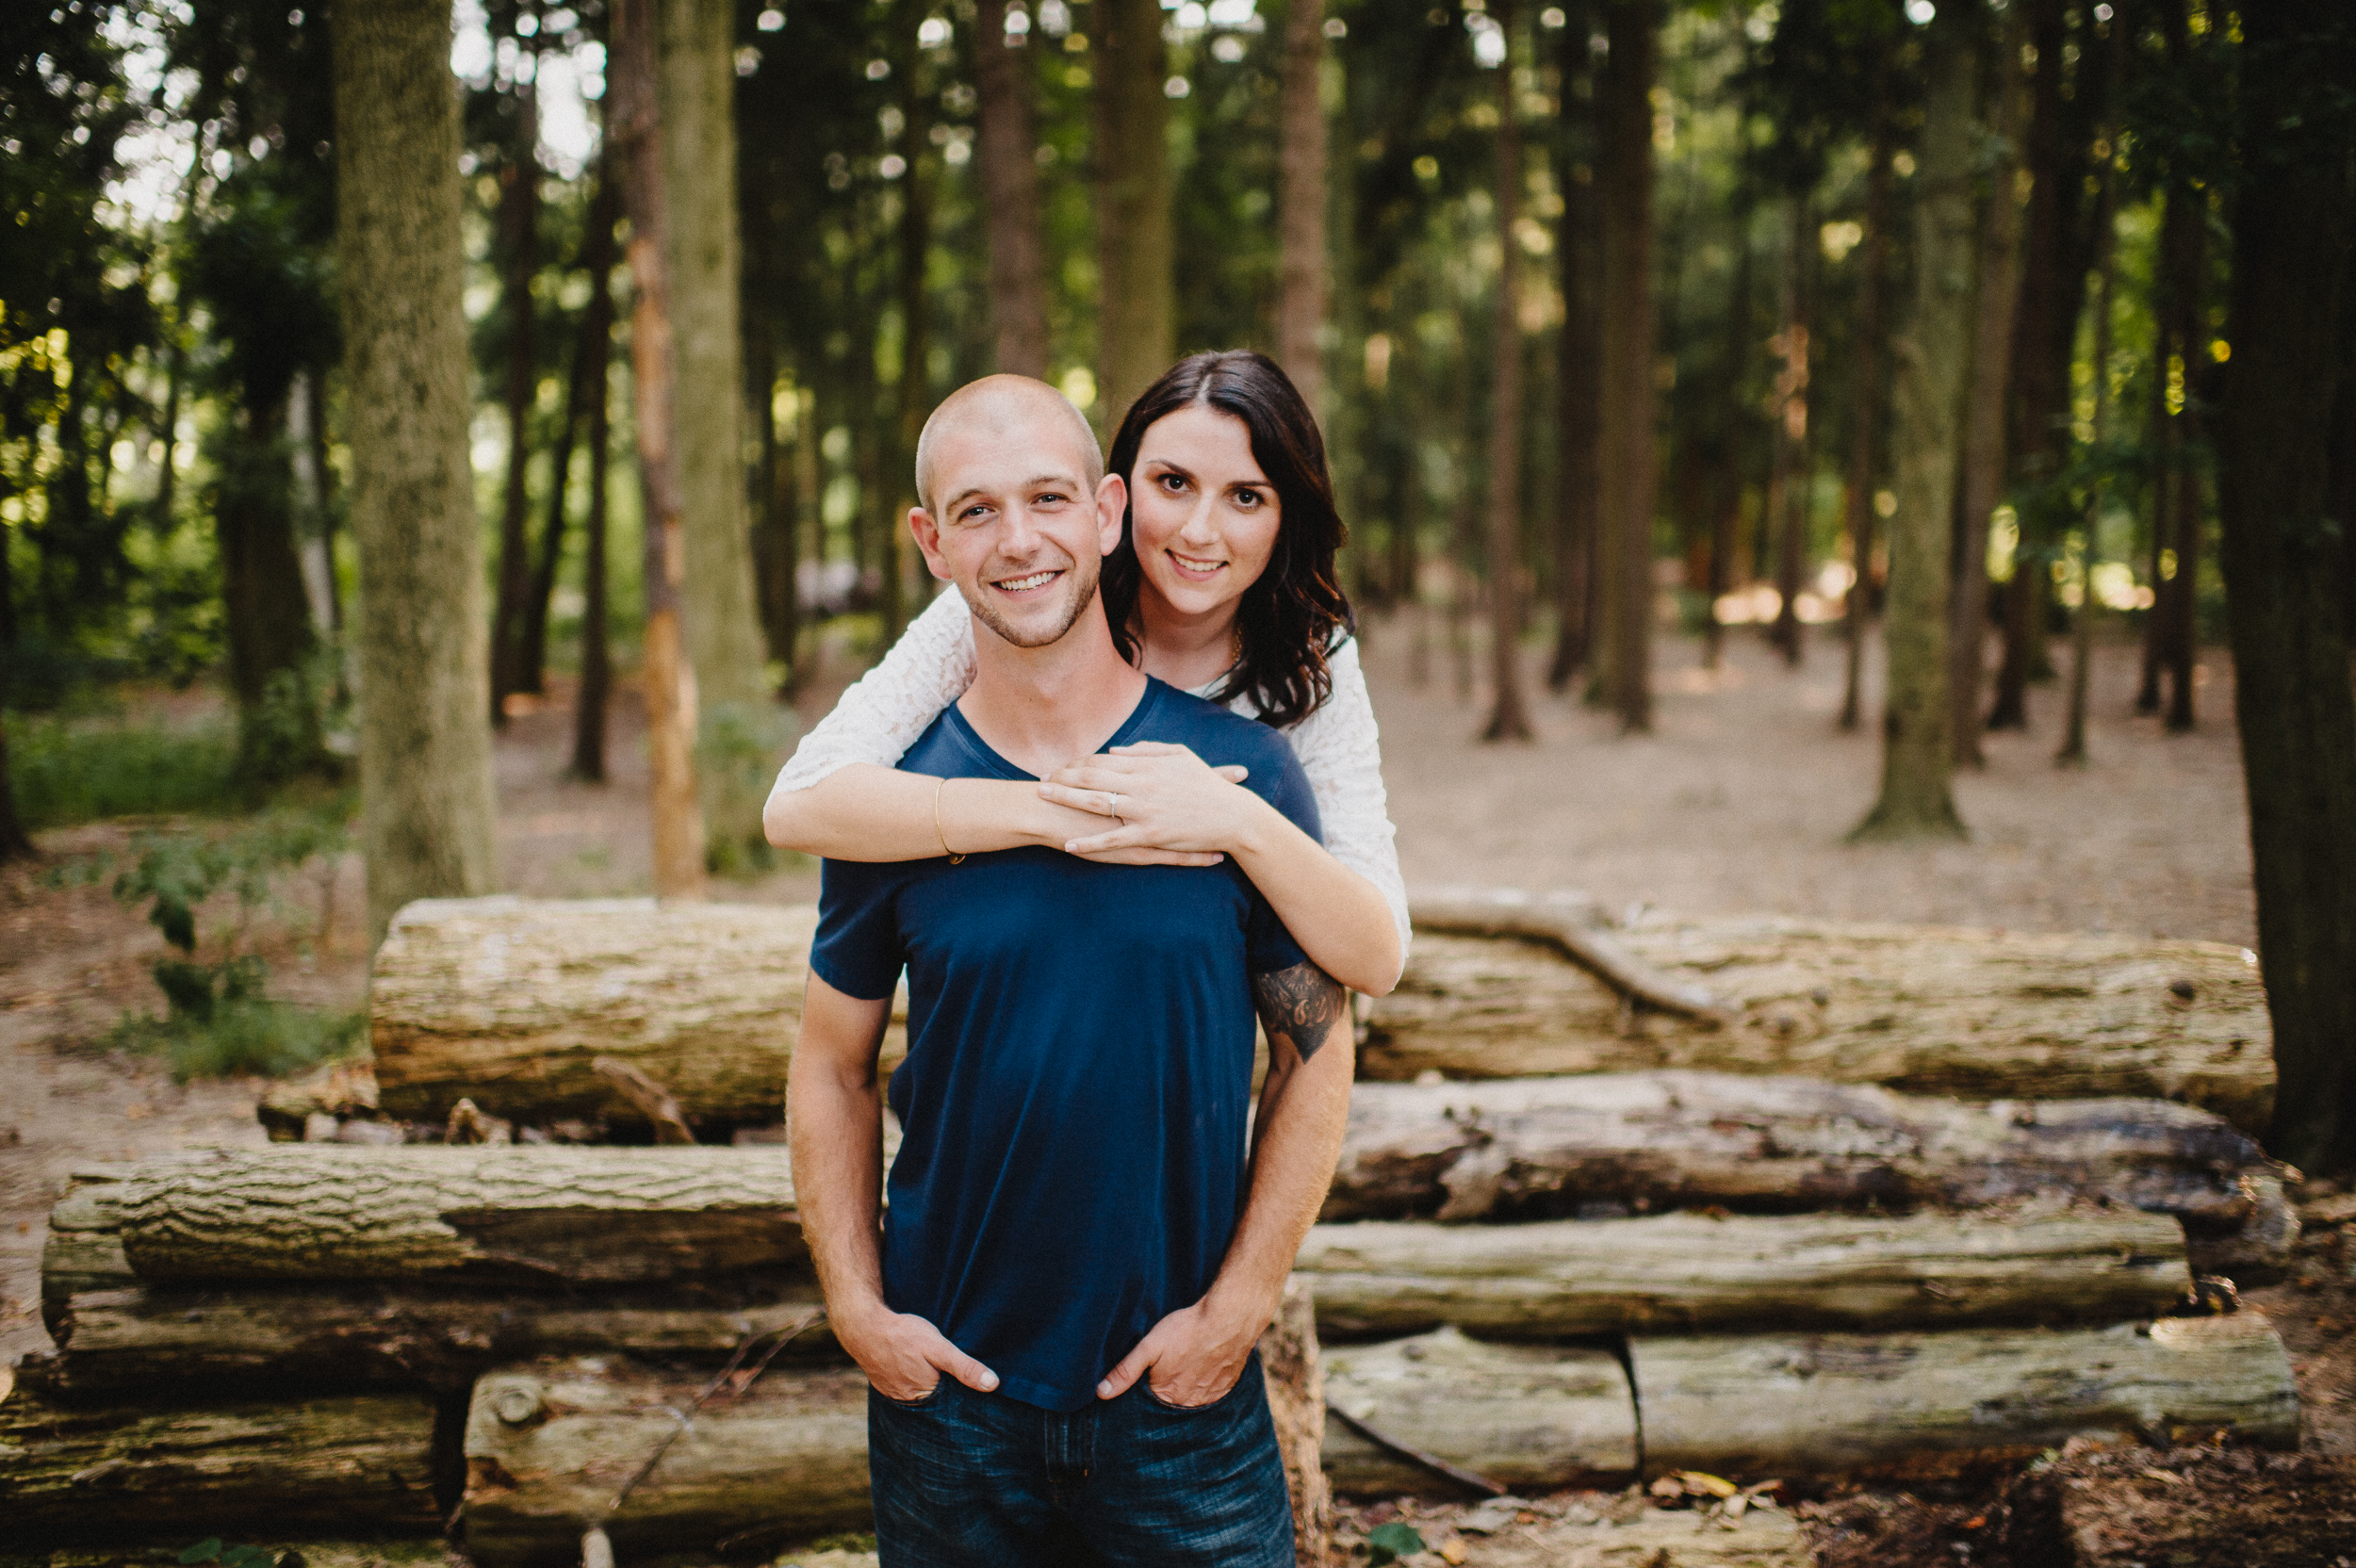 pat-robinson-photography-pa-engagement-session-2.jpg